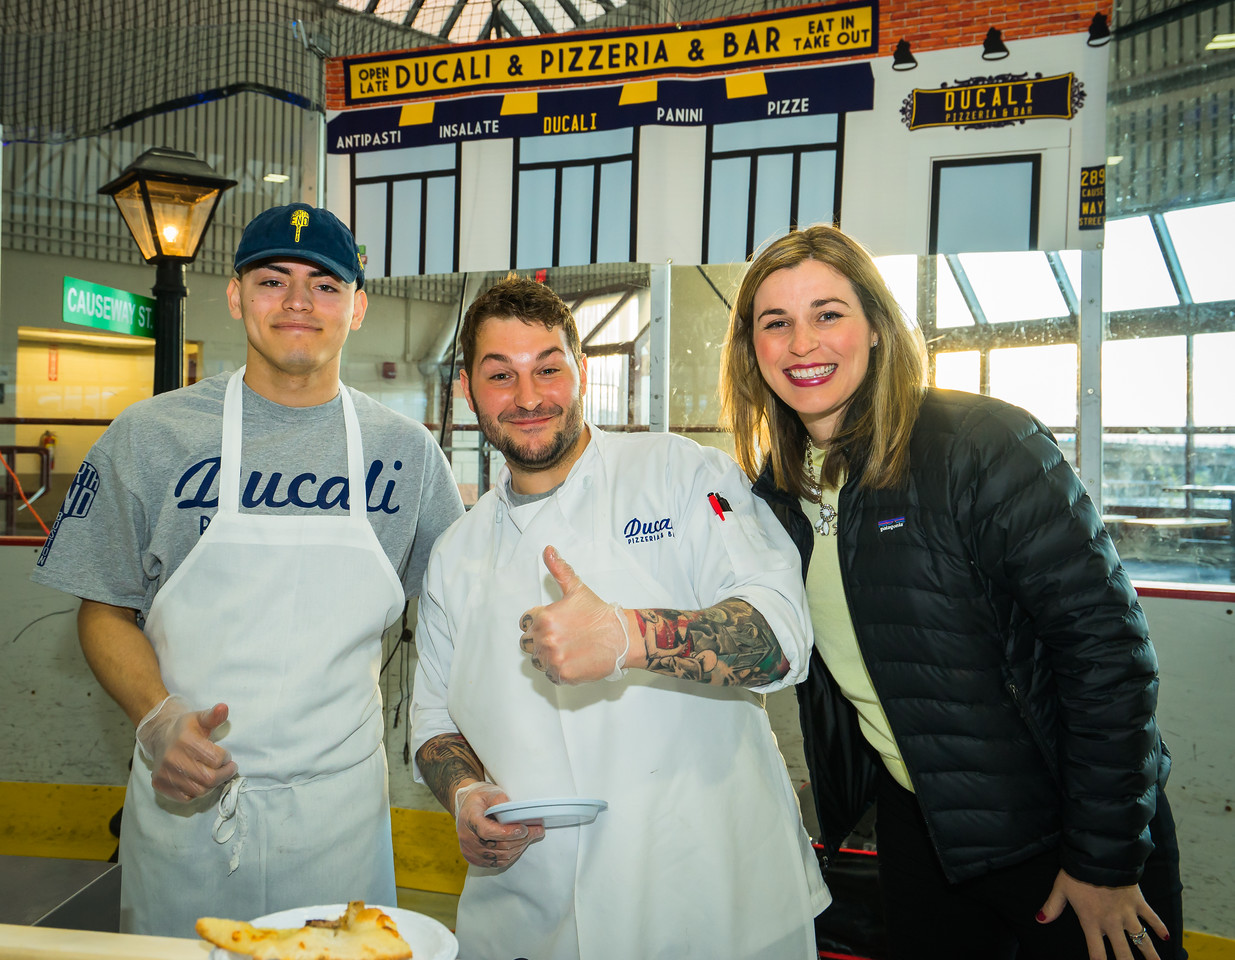 William, Anthony and Kelly from Ducali Pizzeria